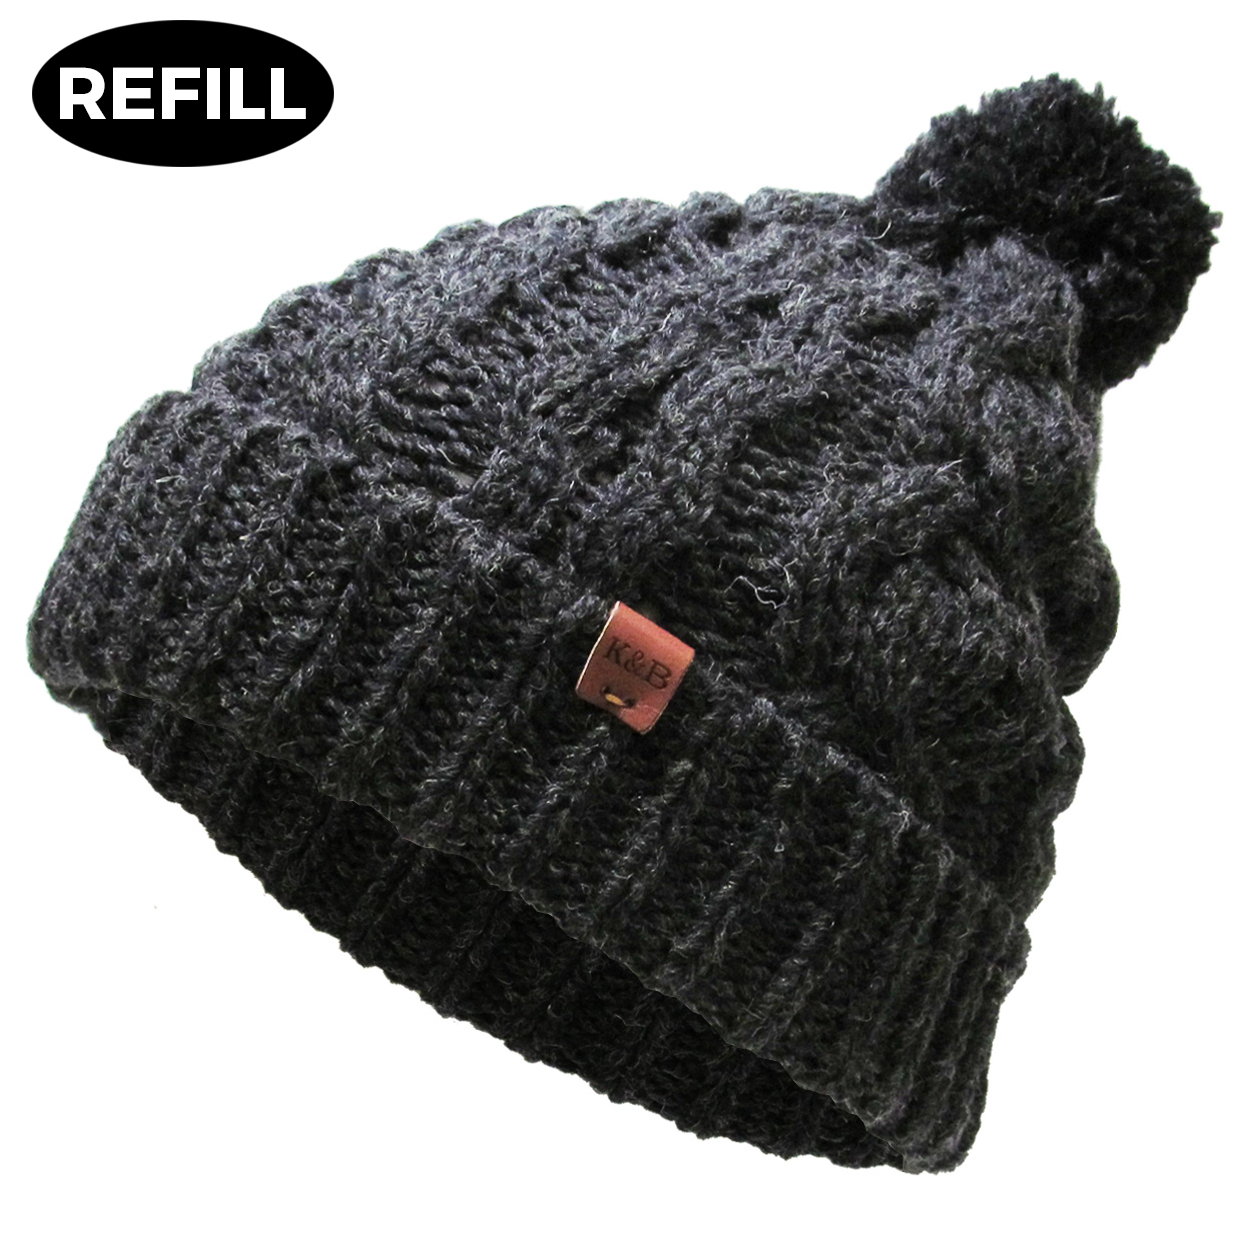 POMPOM - Wool Blend Winter Beanie (1 pc REFILL)